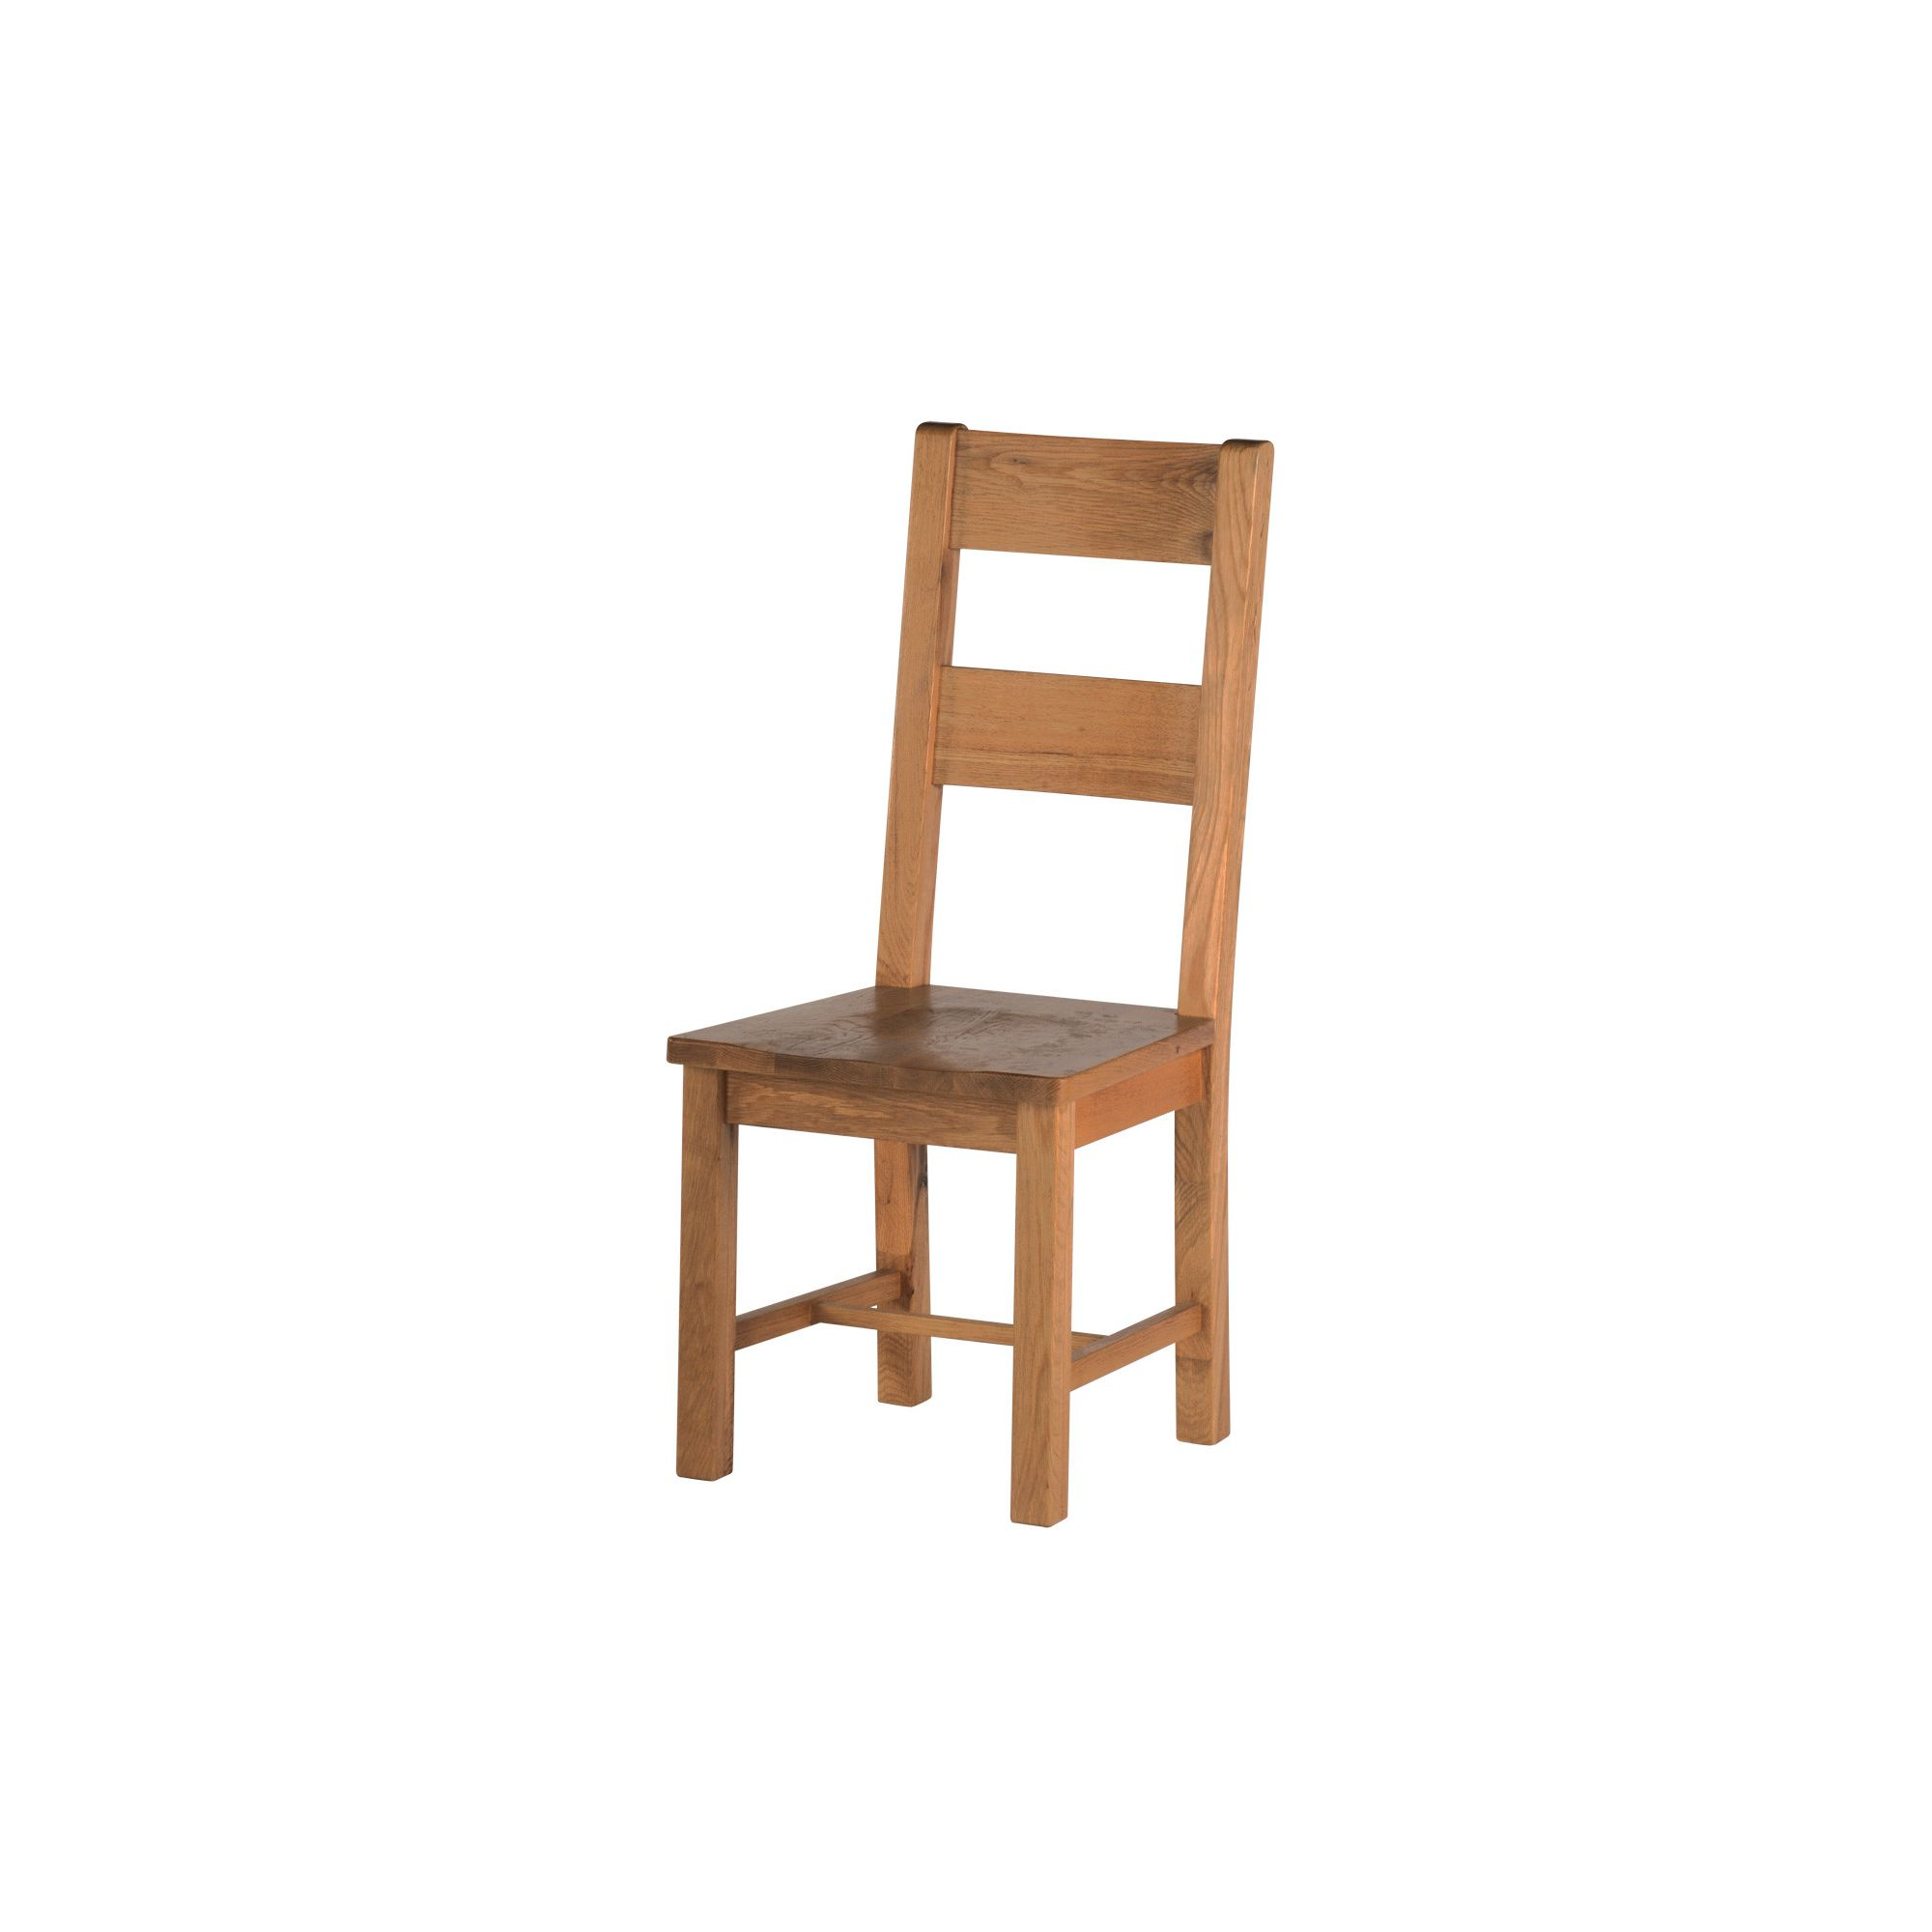 Thorndon Sandown Dining Chair with Wooden Seat in Rustic Oak